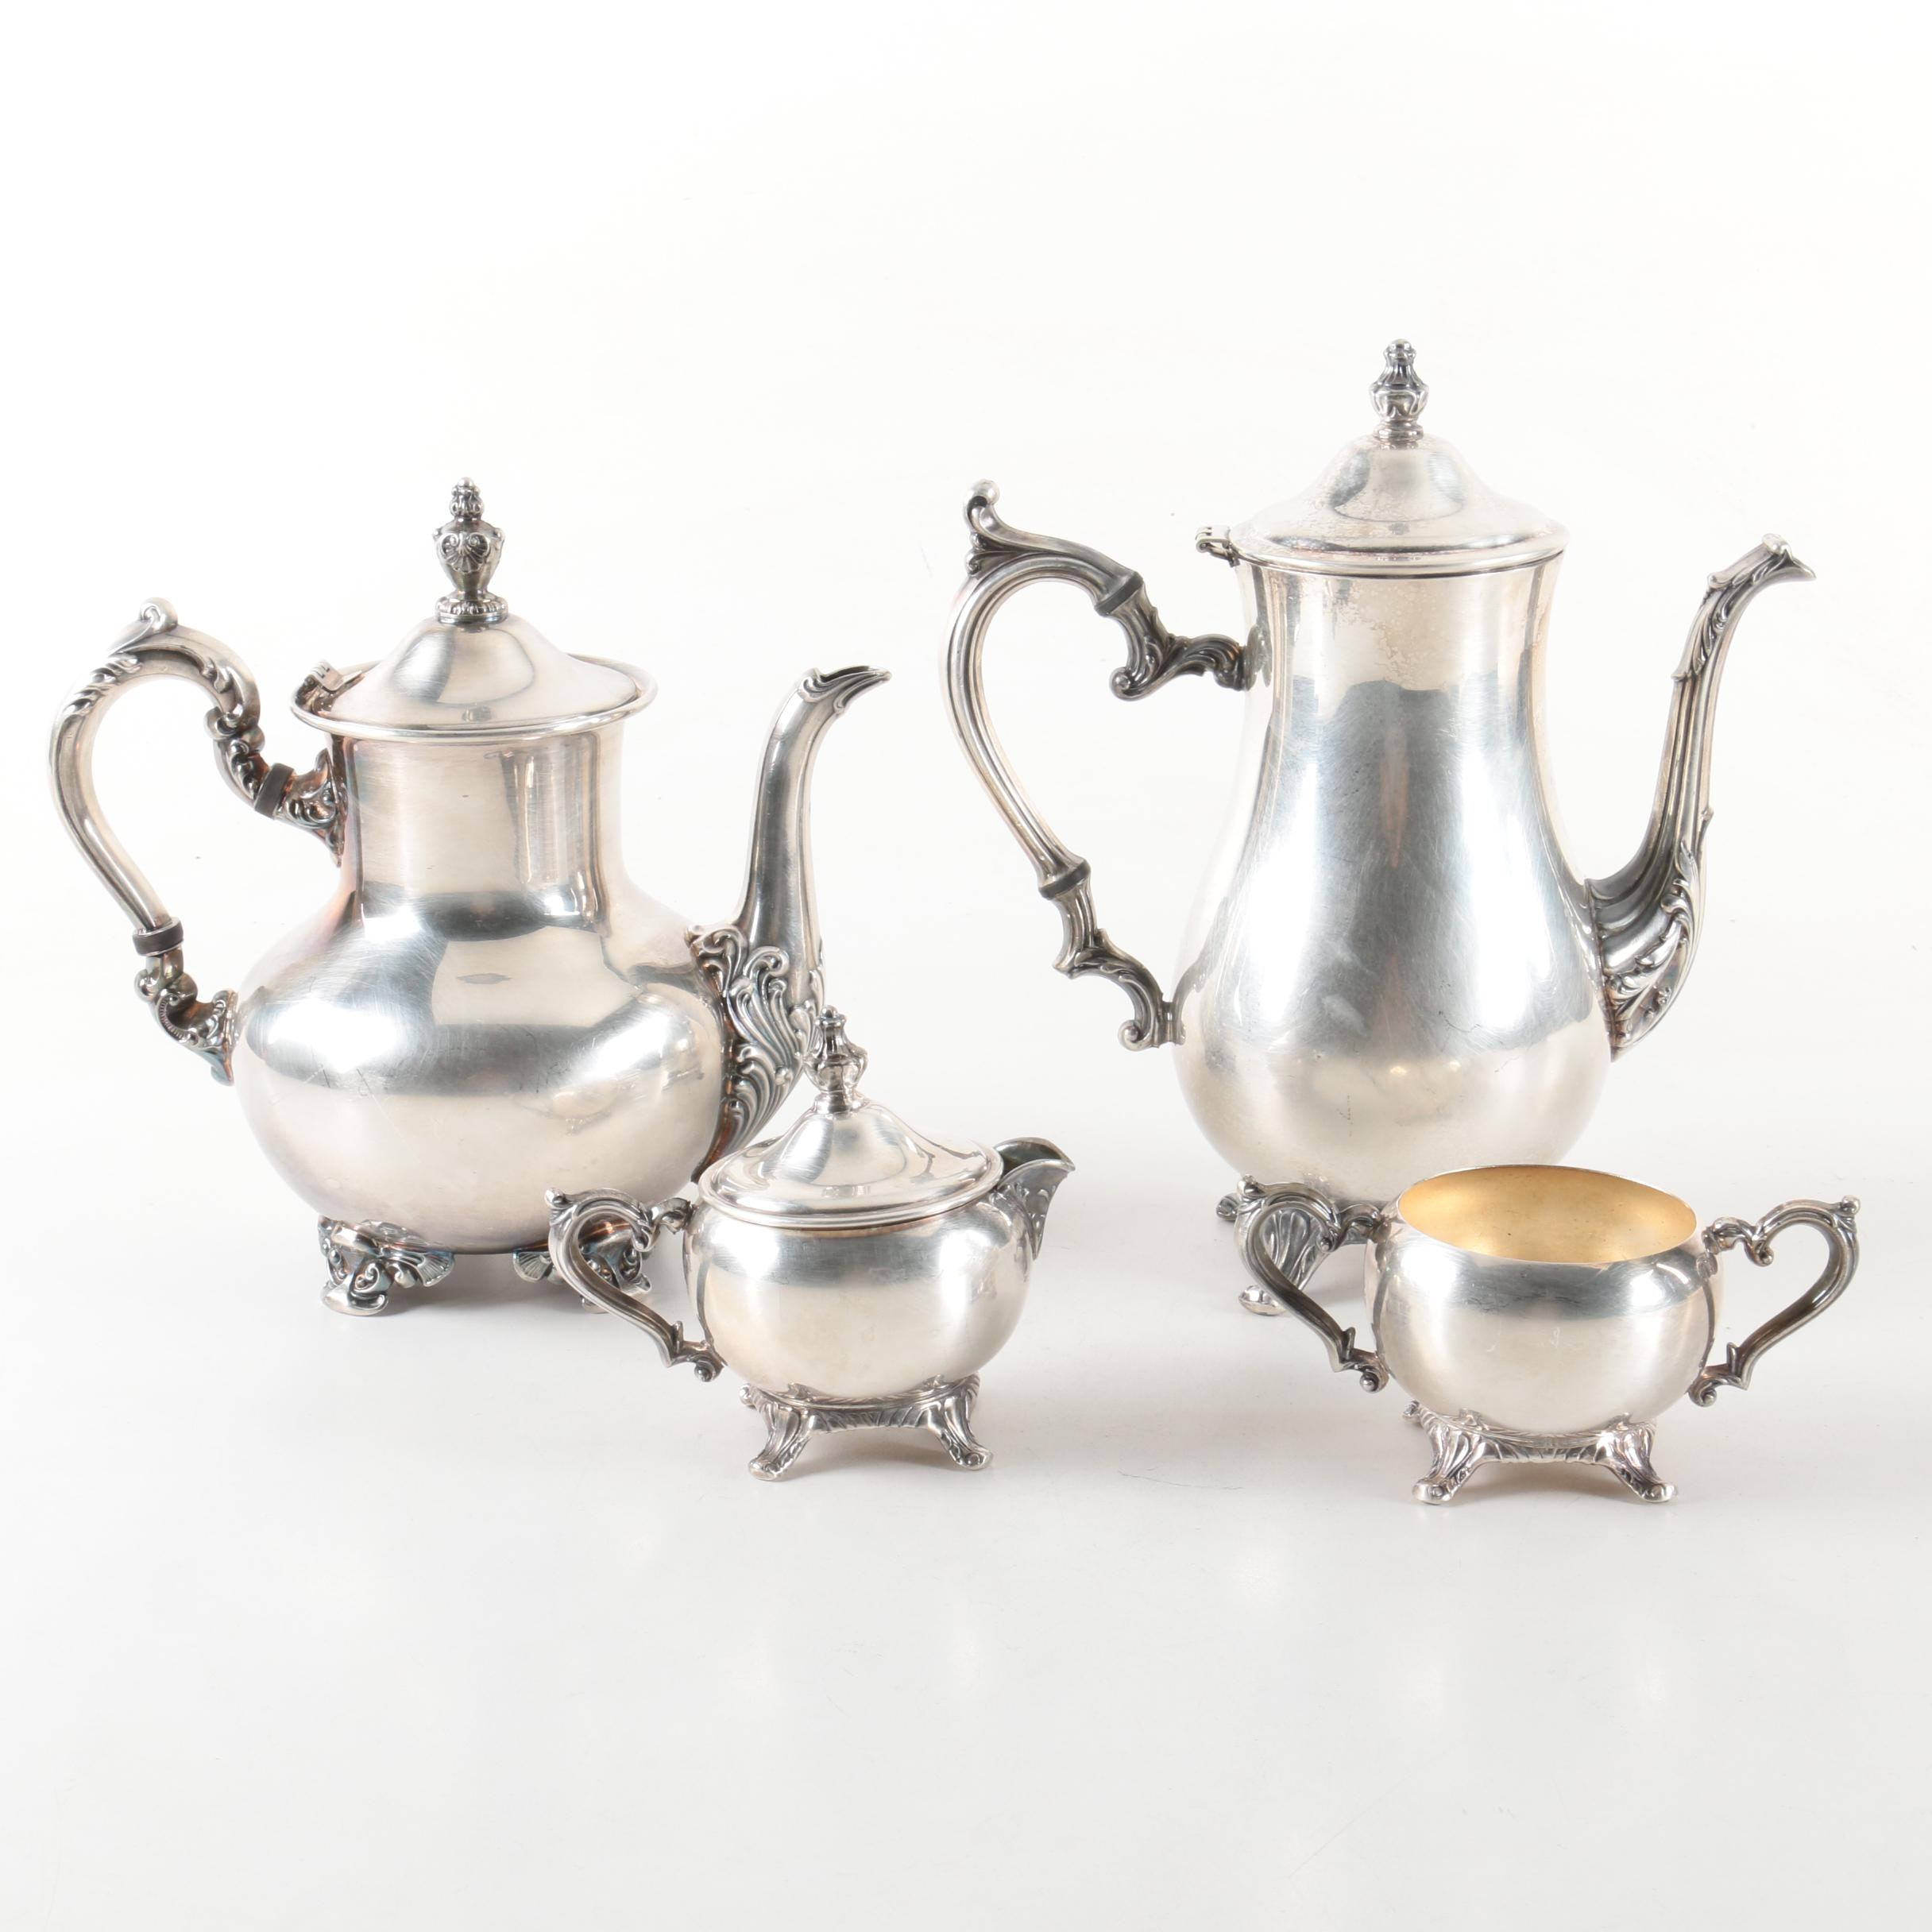 Poole  Old English  Silver Plate Tea and Wm Rogers Coffee Service Set ...  sc 1 st  EBTH.com & Poole